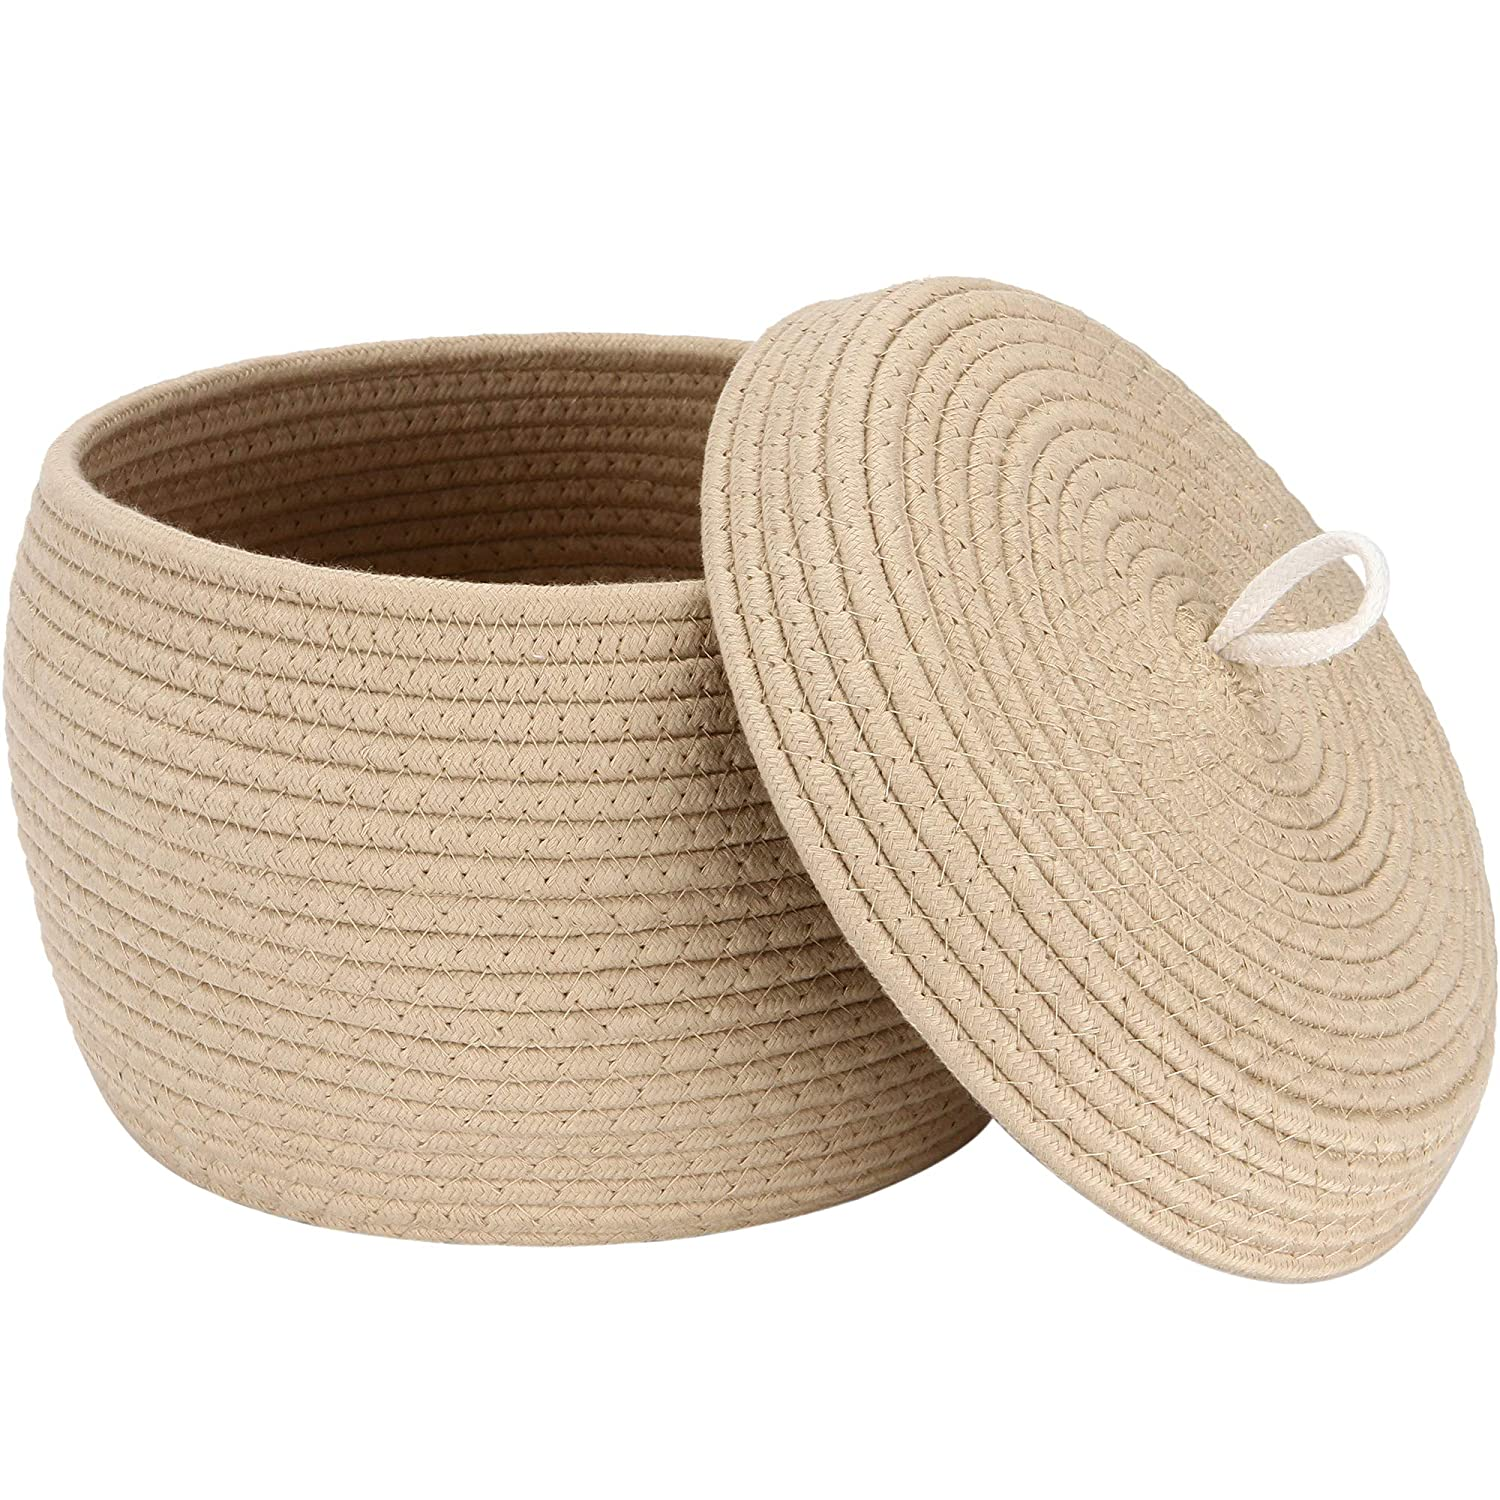 Sea Team Round Cotton Rope Storage Basket with Lid, Decorative Woven Storage Bin, Pot, Caddy, Organizer, Container for Snacks, Towels, Plants, 10 x 7.5 Inches (Small Size, Khaki)